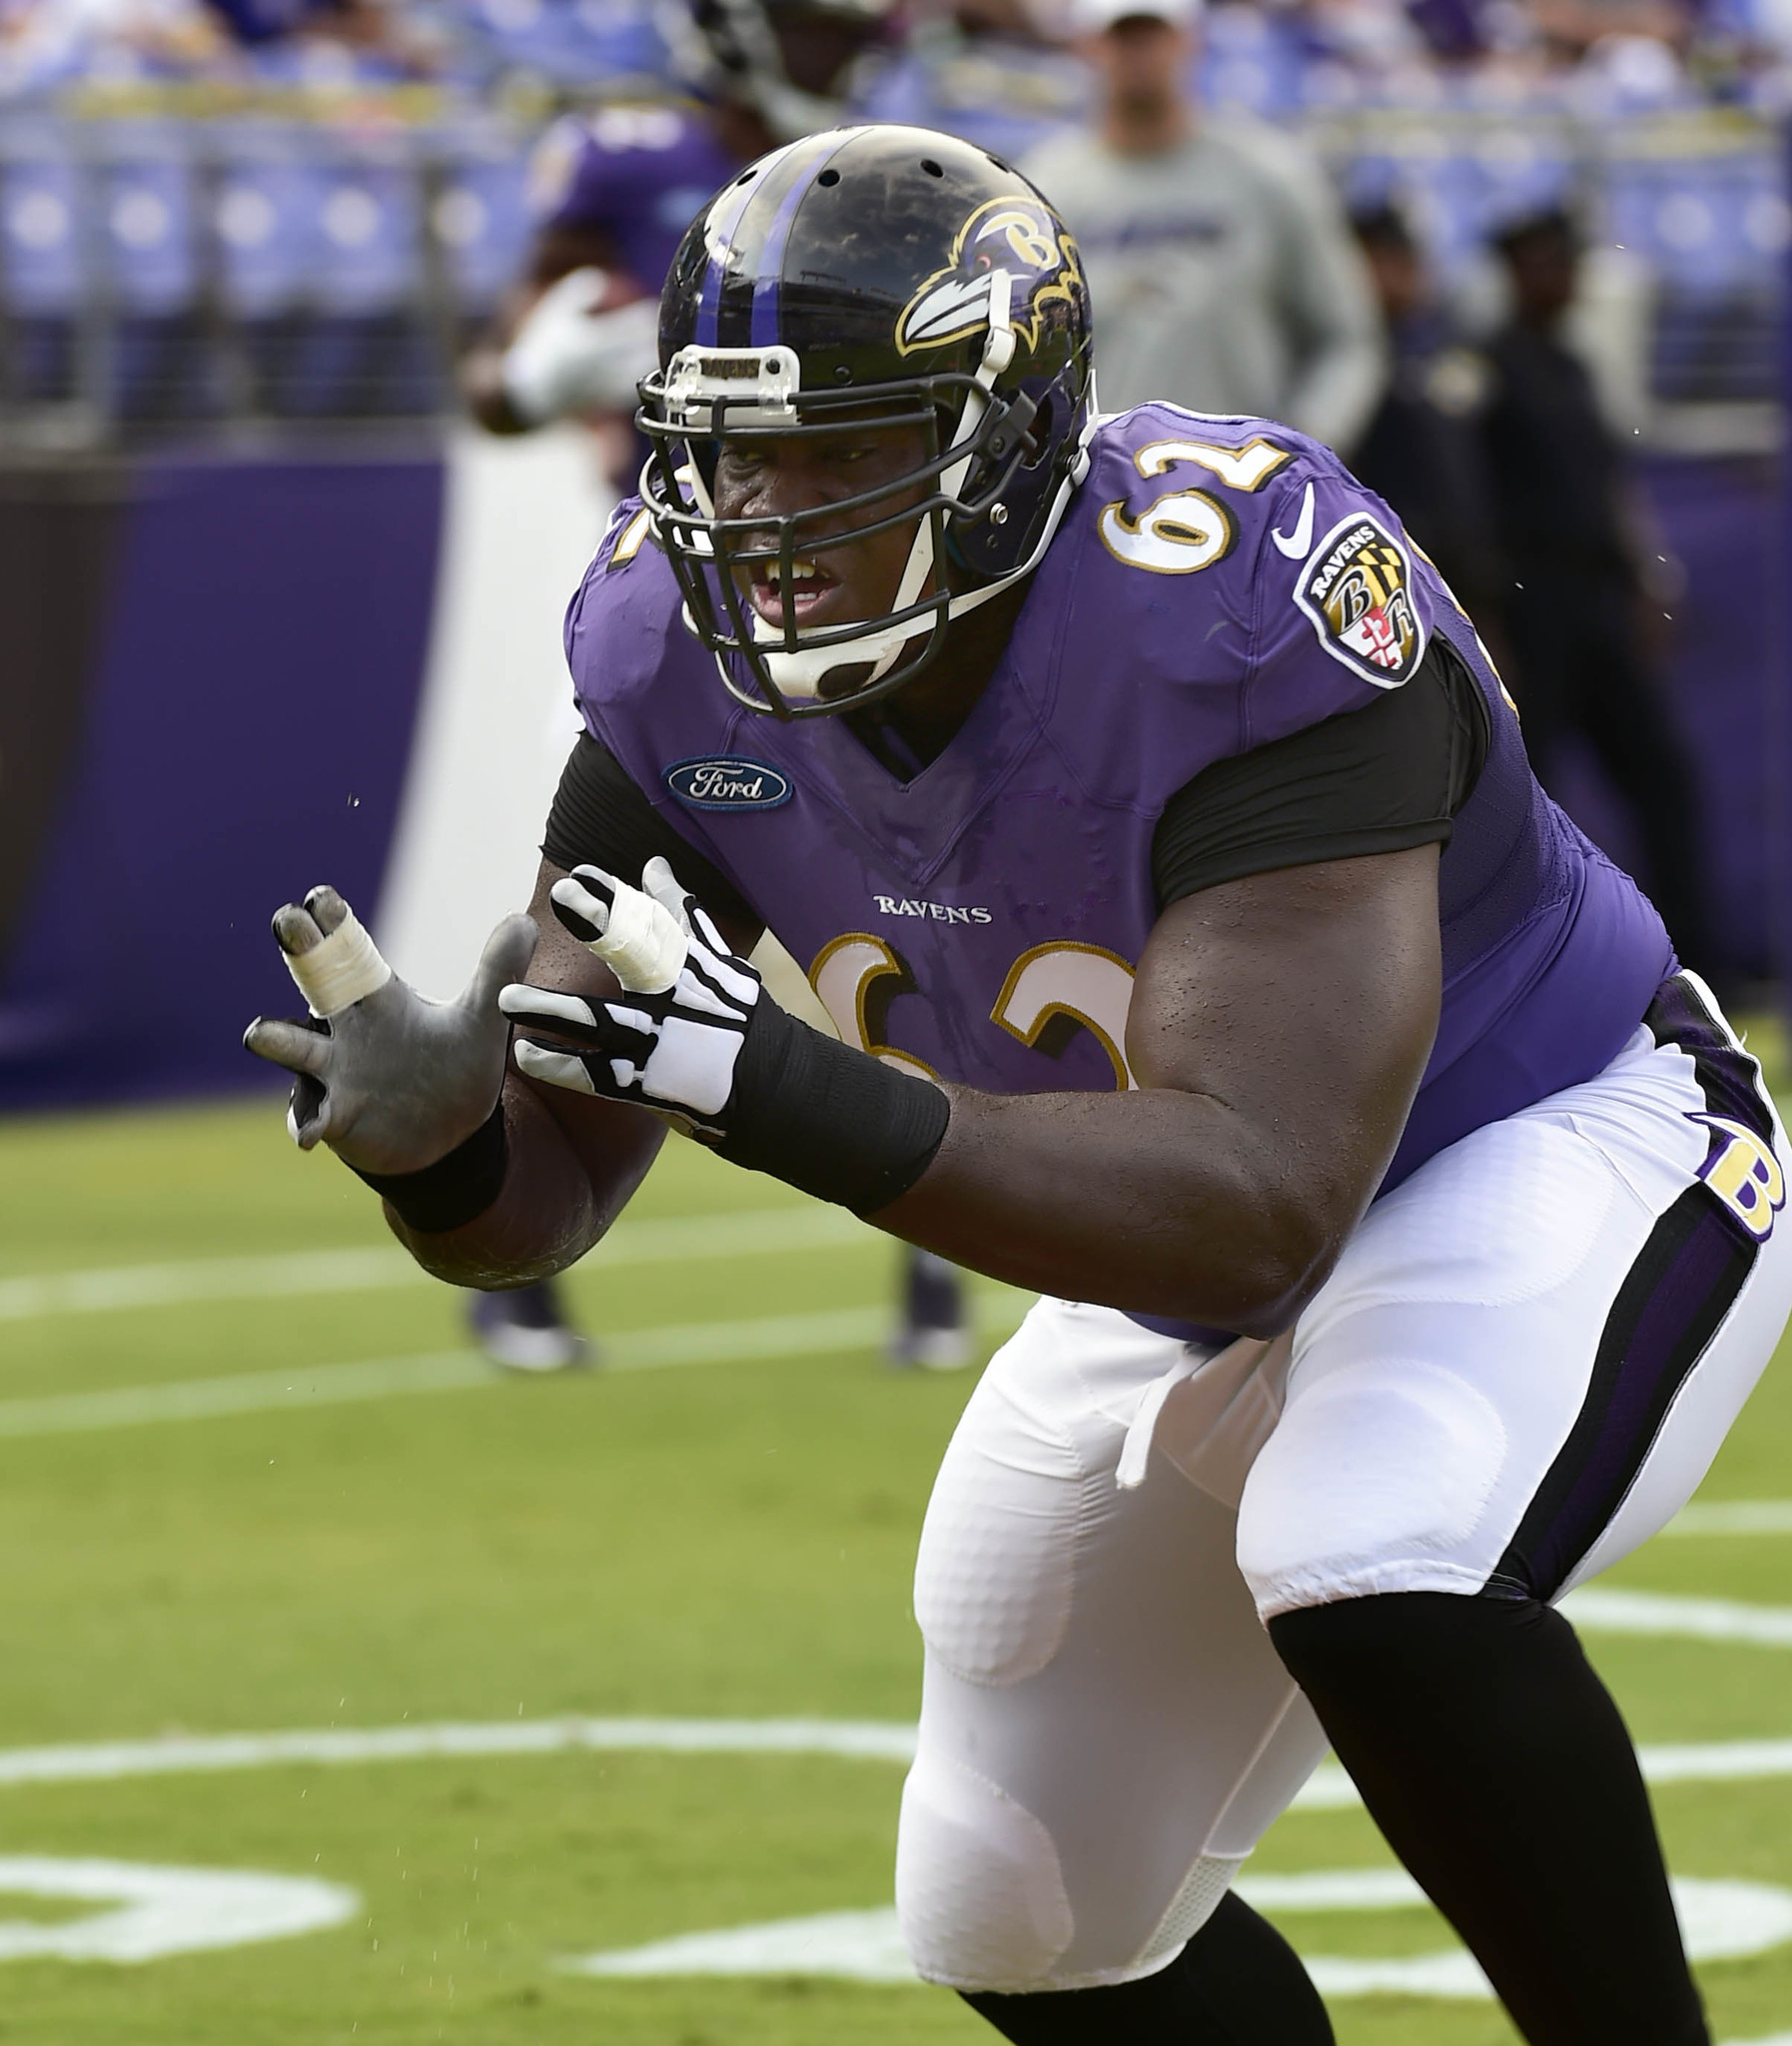 Update] Vladimir Ducasse expected to start at right guard for